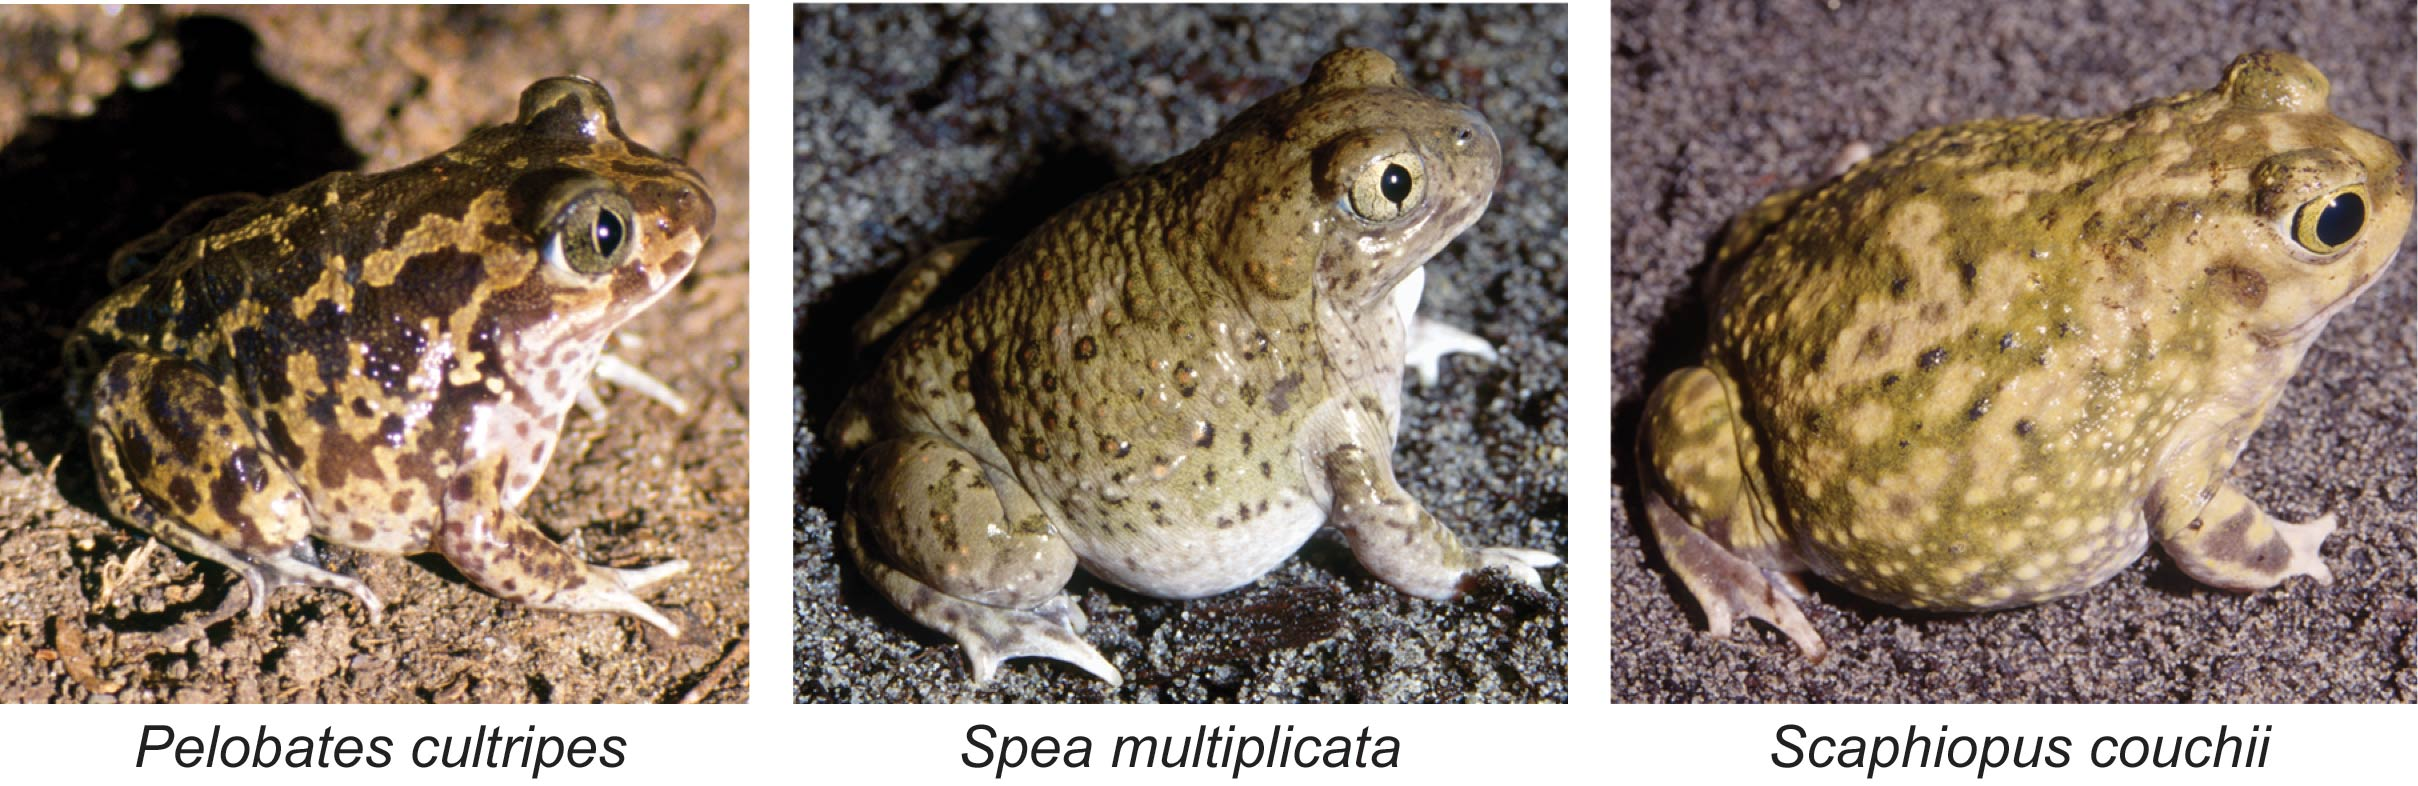 These three species of spadefoot toads metamorphose differently. The first two species from the left are able to regulate the timing of their metamorphosis by modulating hormone production. The species on the right has a fixed period for their metamorphosis. It's all thanks to the ponds they live in. Images courtesy: Robert Denver